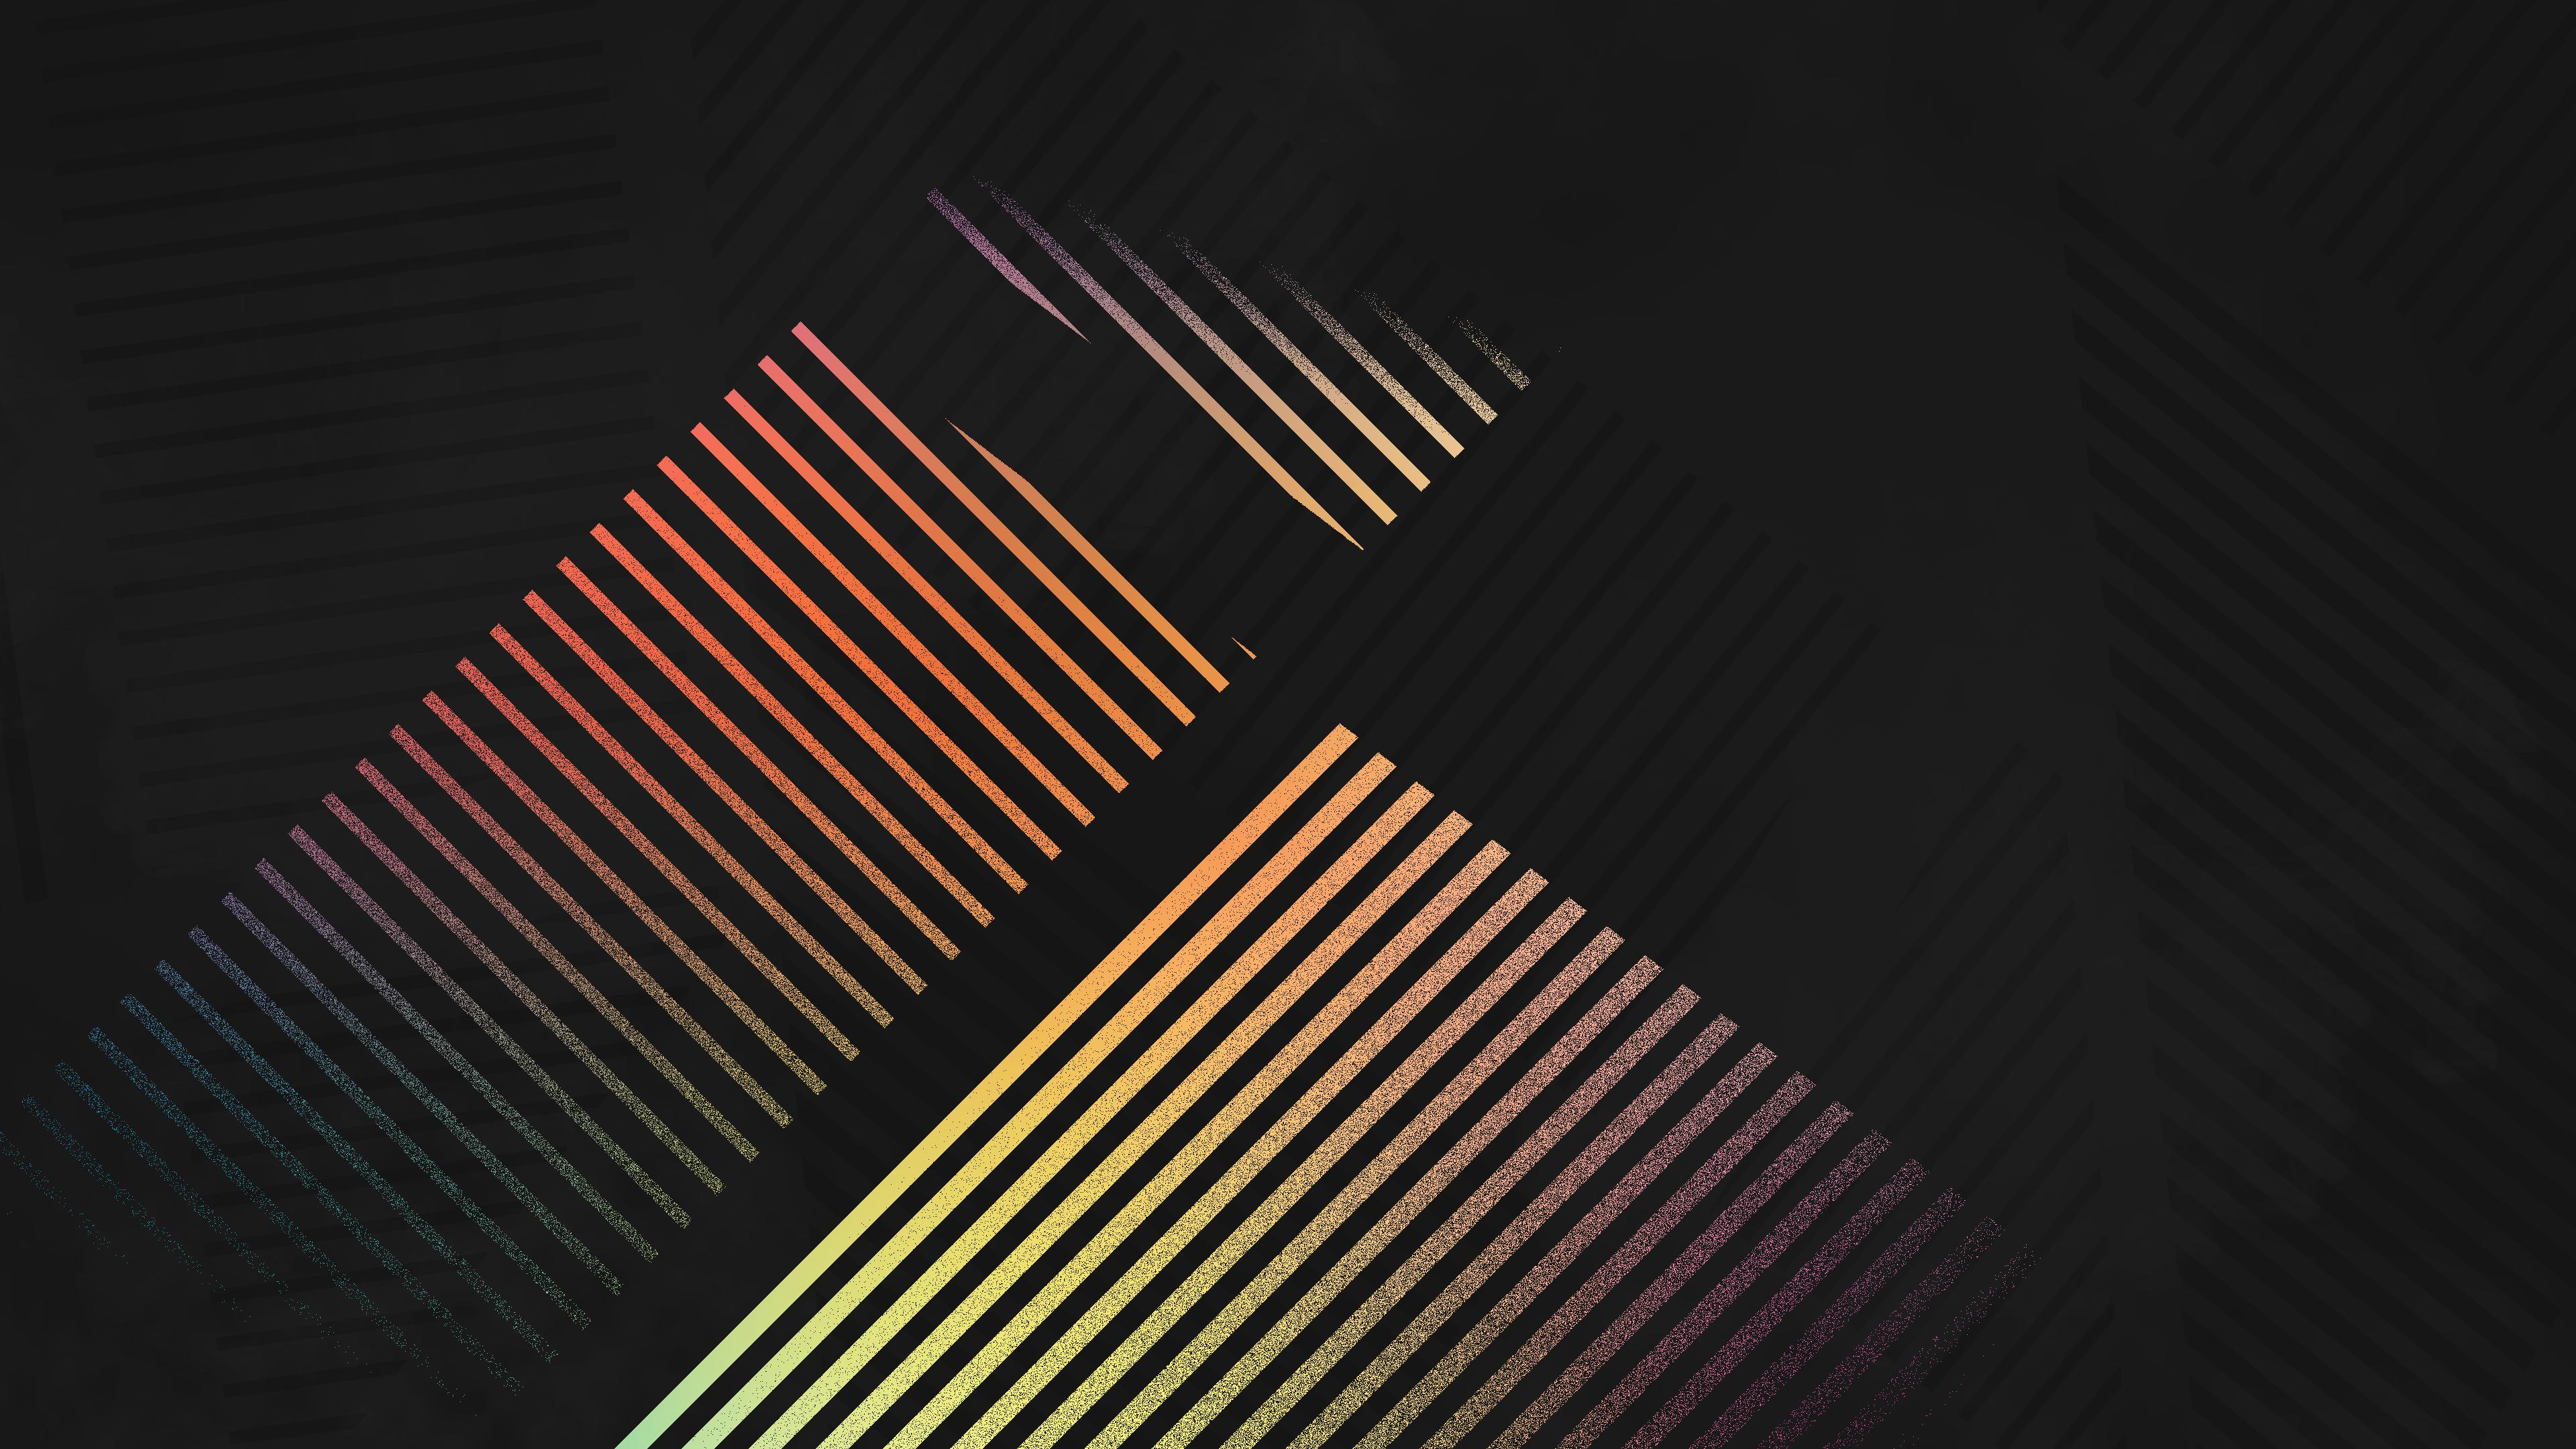 Wallpaper 4k Abstract Lines Shapes 4k 4k Wallpapers